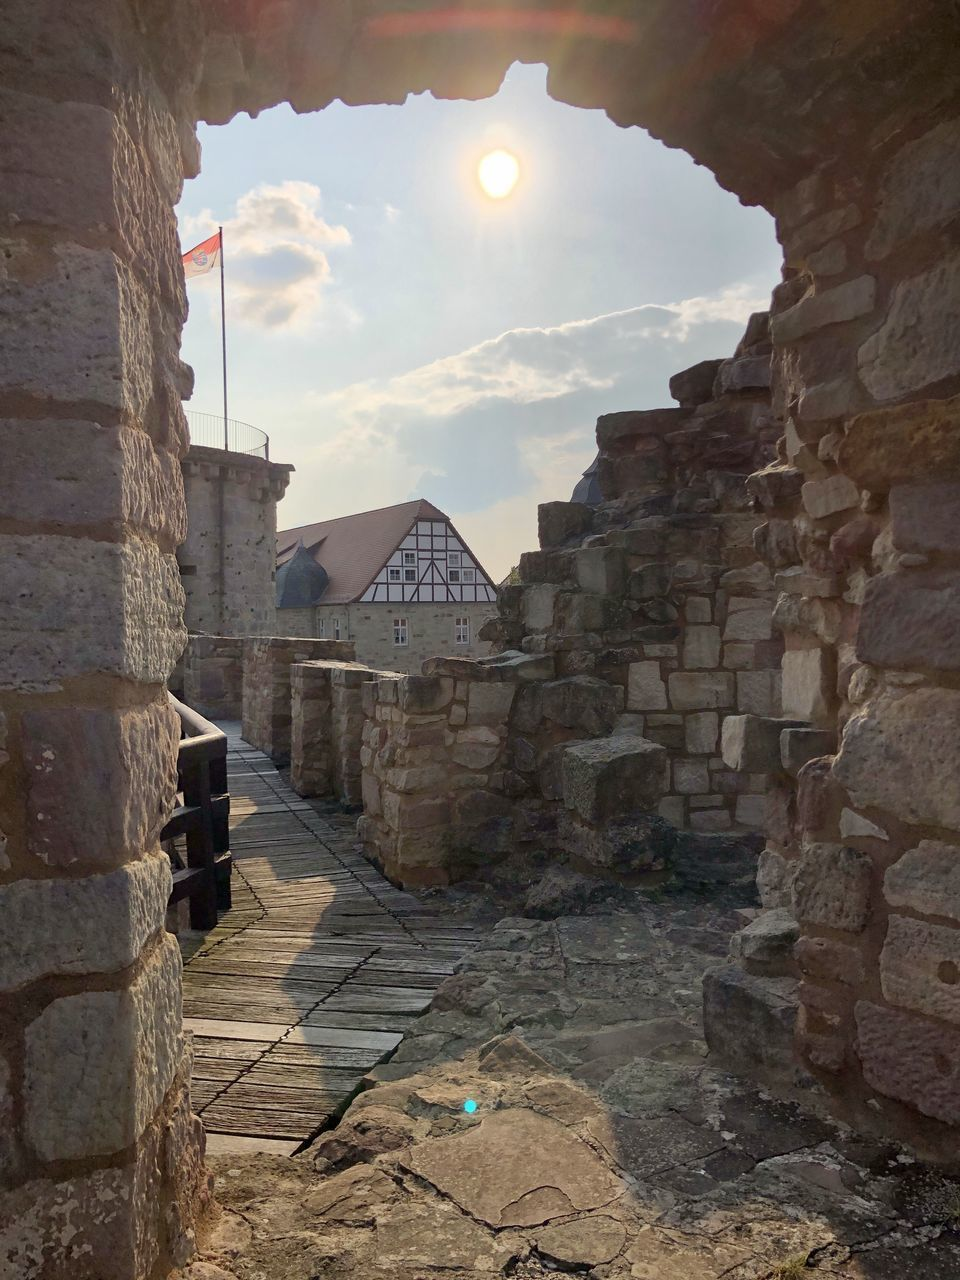 architecture, built structure, building exterior, building, history, the past, sky, stone wall, no people, old, nature, wall, ancient, sunlight, cloud - sky, day, travel destinations, wall - building feature, outdoors, residential district, lens flare, ancient civilization